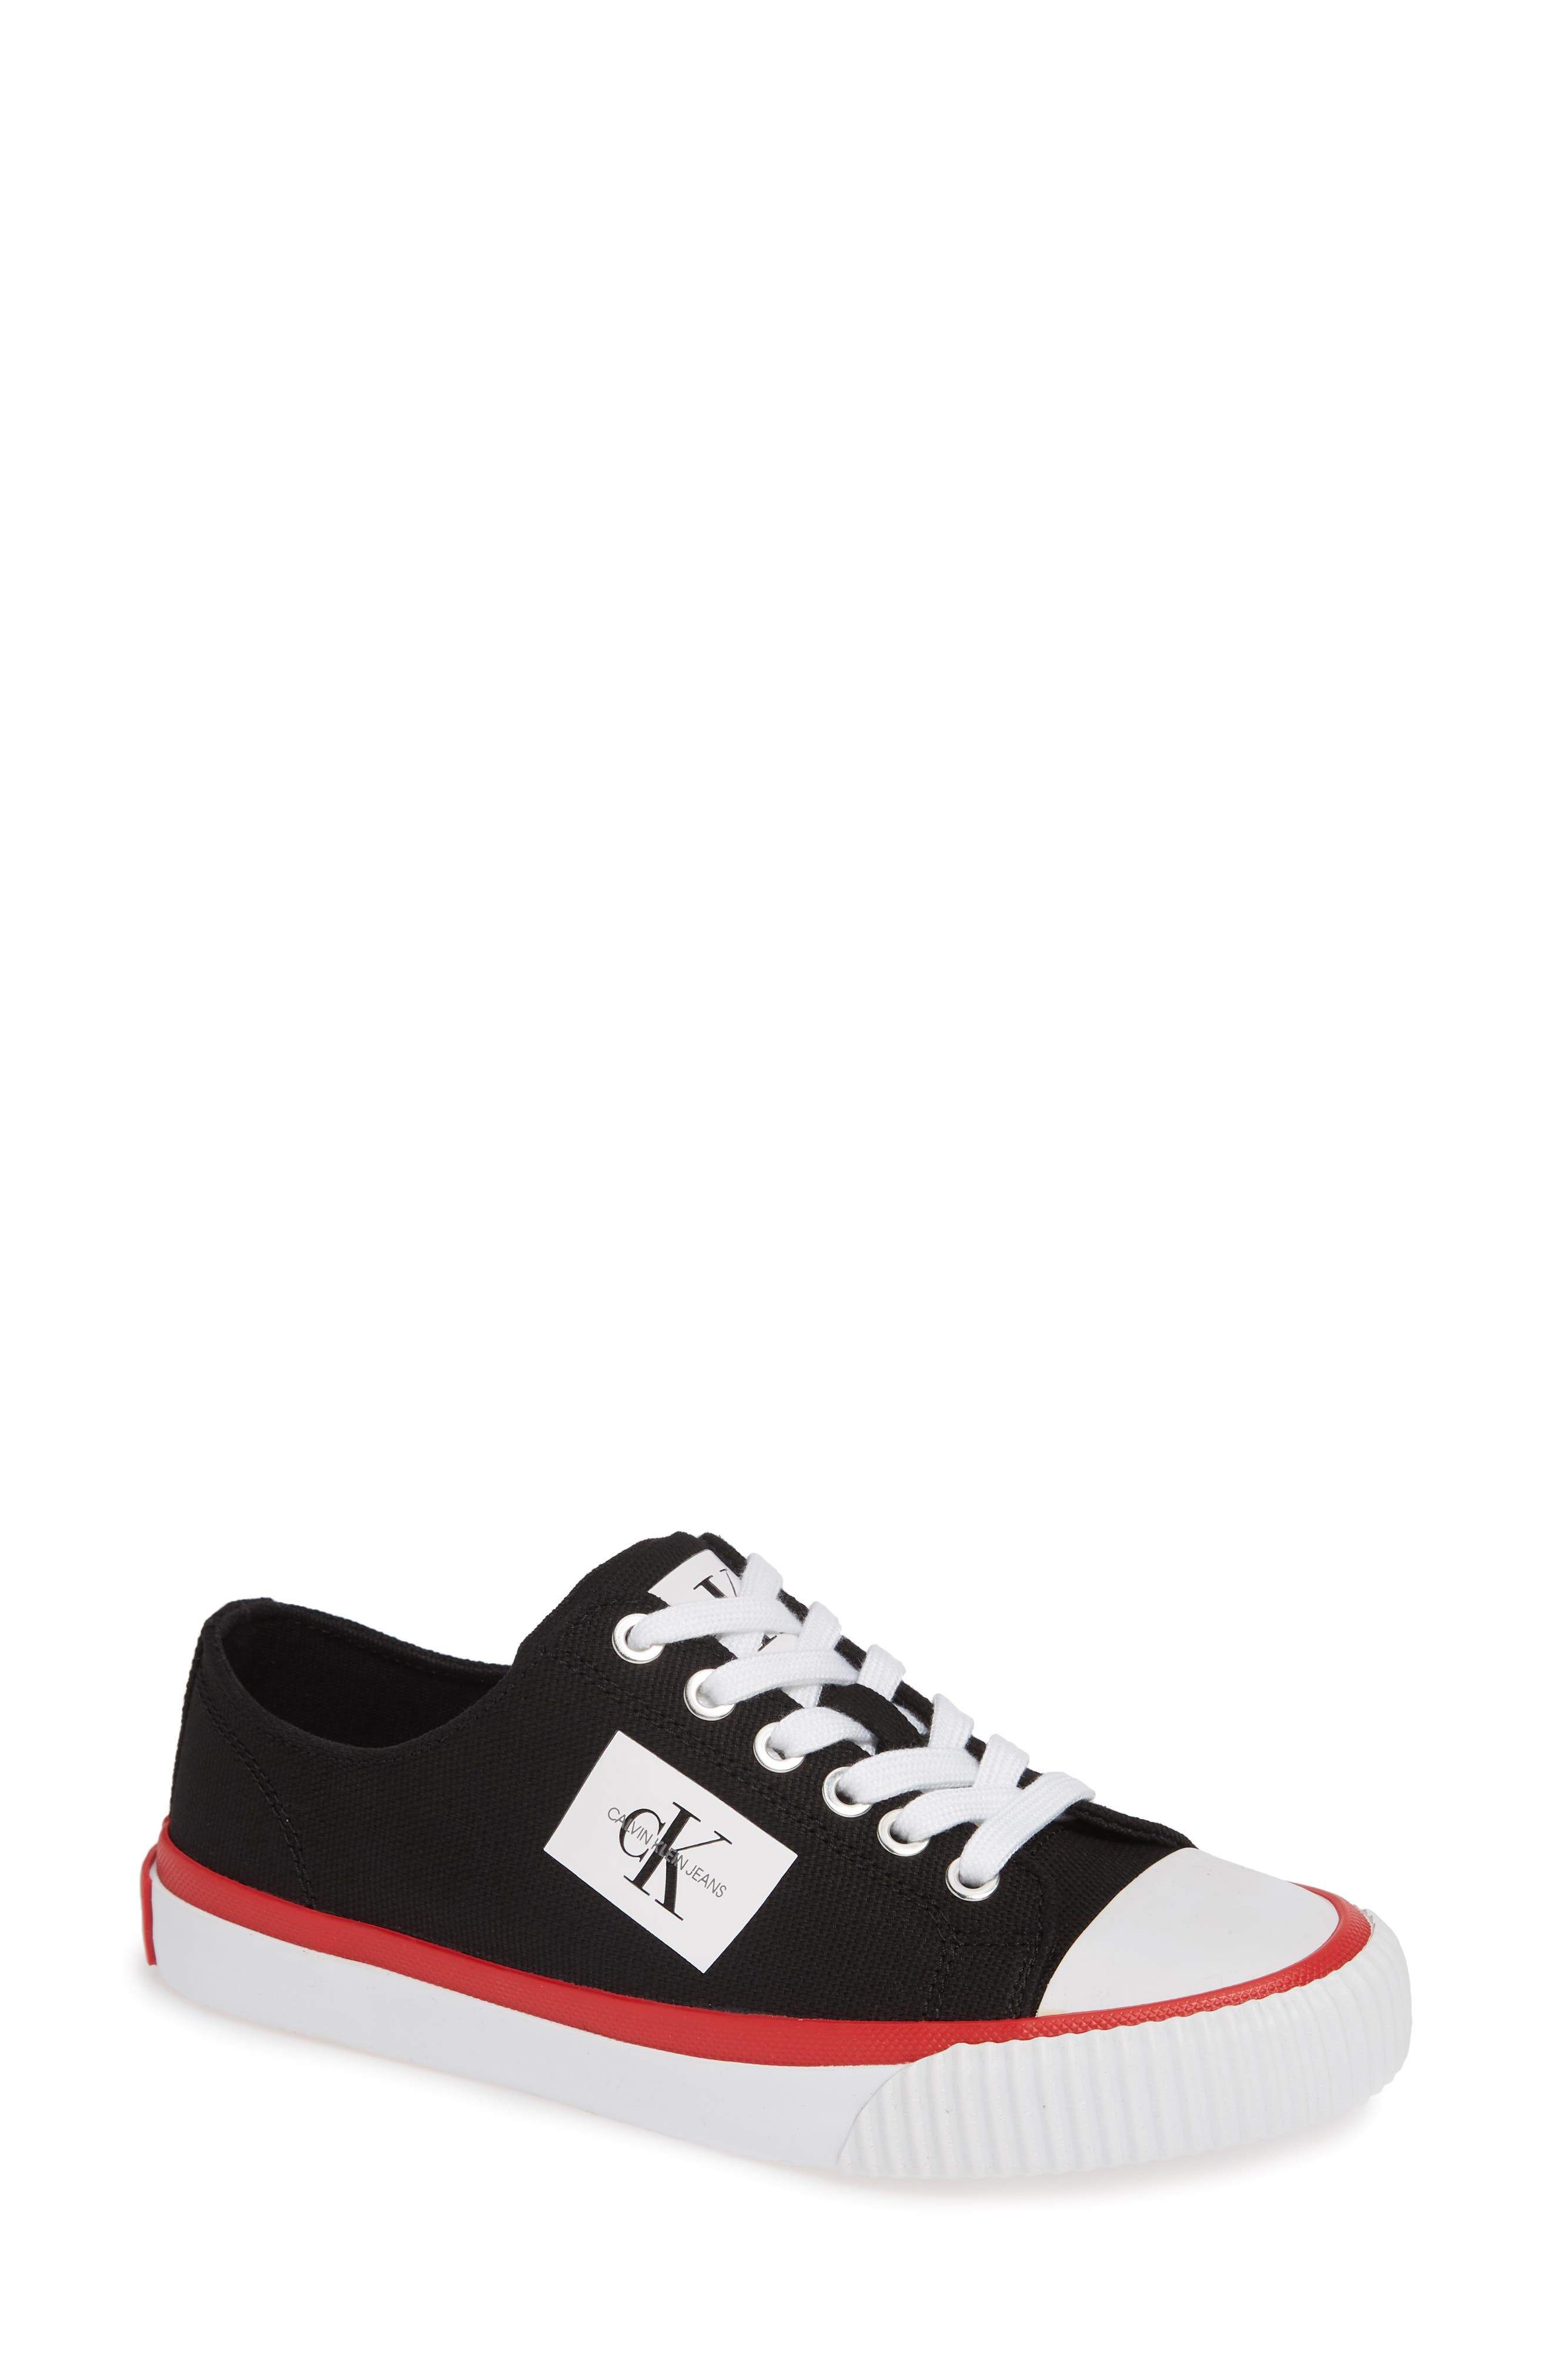 Ivory Lace-Up Sneaker,                             Main thumbnail 1, color,                             001